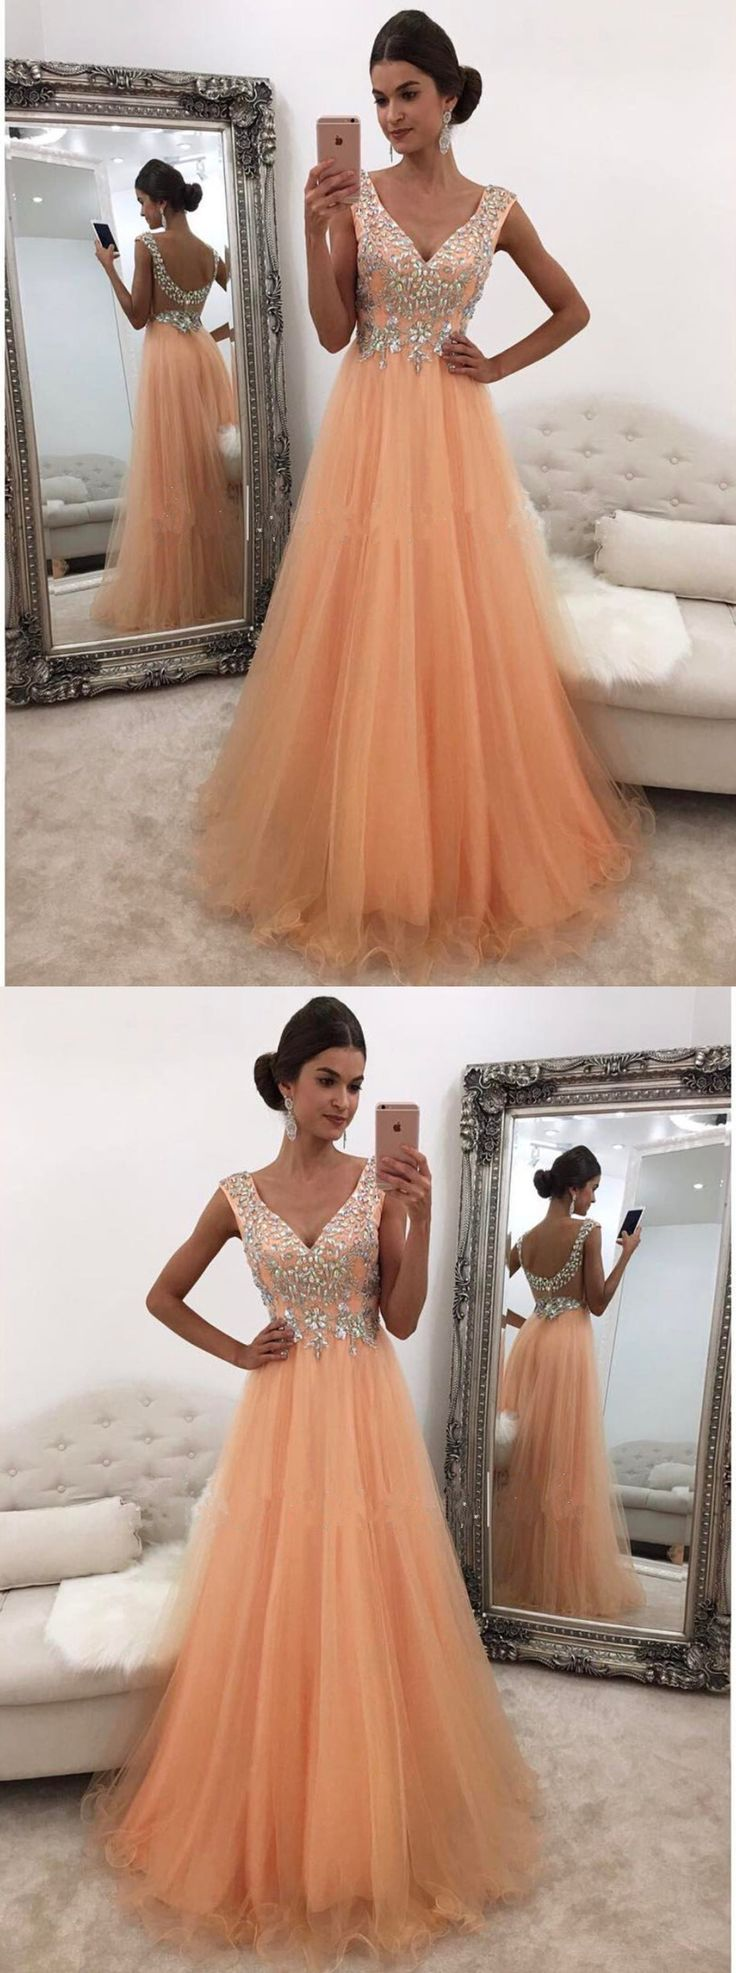 Beaded Tulle Prom Dress, A-Line Long Prom Dress, Low Back Orange Evening Dress	#promdress #longpromdress #elegantpartydress #uniqueeveningdres #simplepromgown #RosyProm #Vneckpromdress #tullepromgown